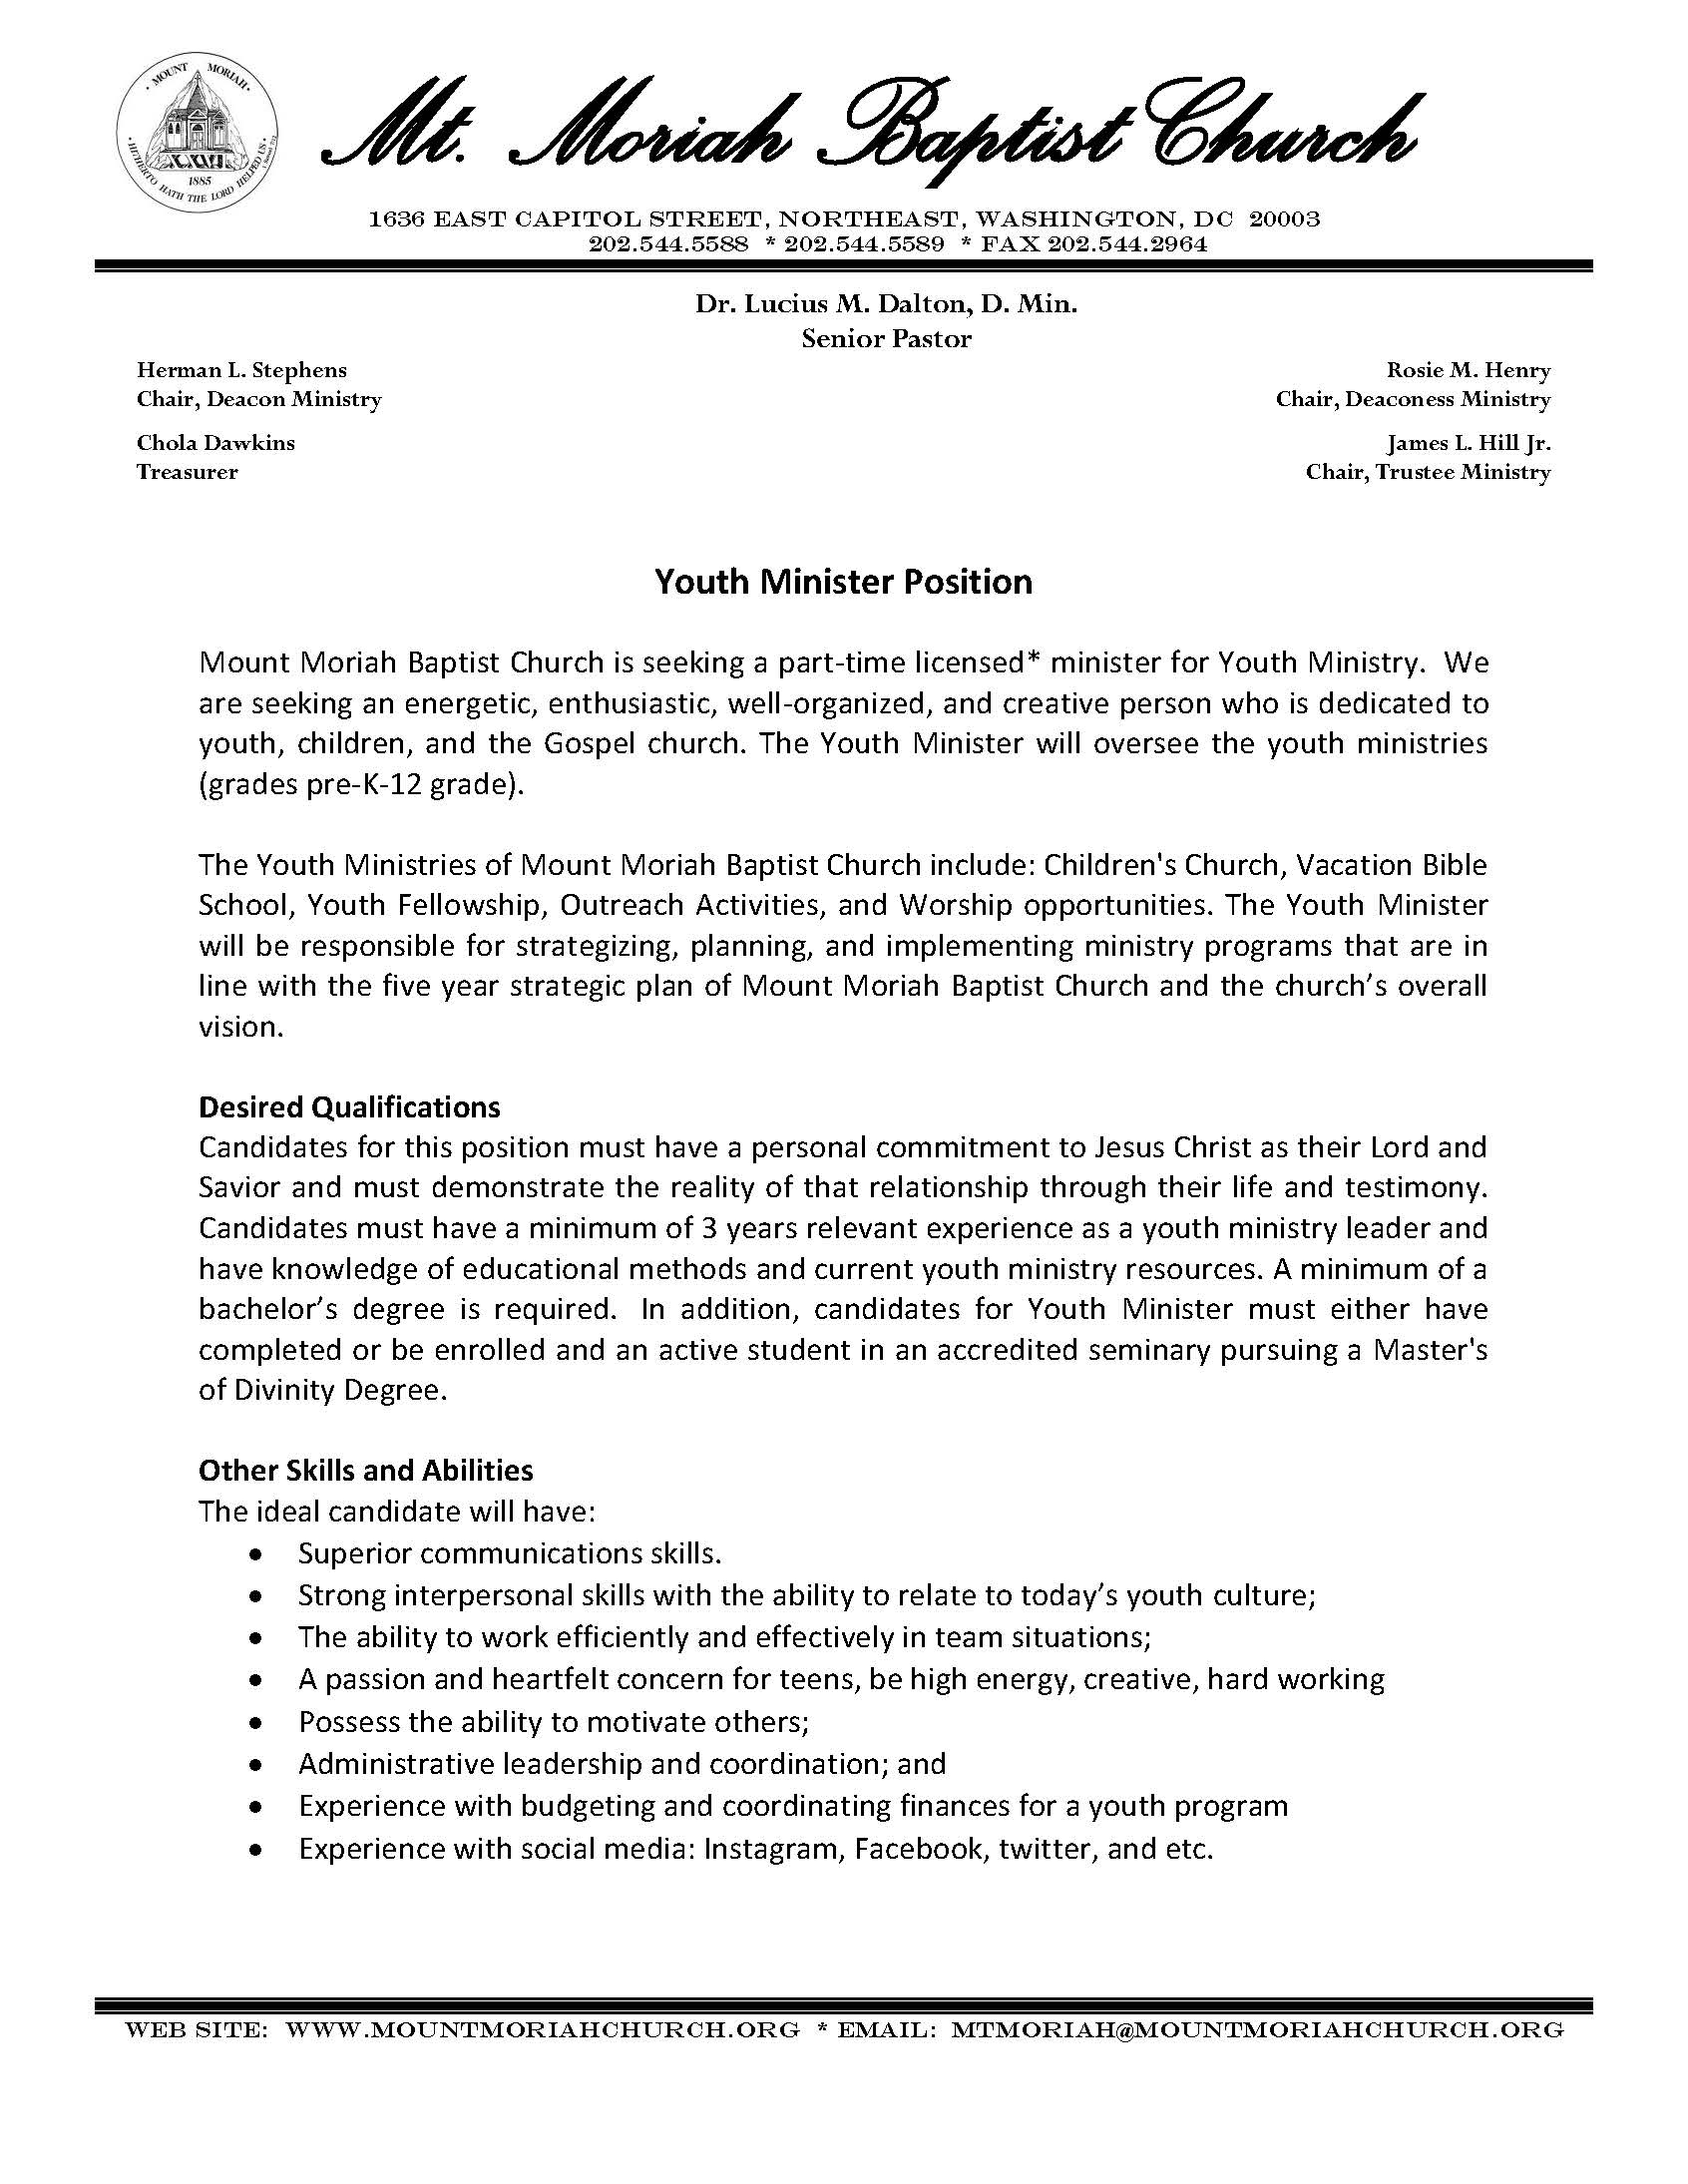 MMBC Youth Minister Position Description Revised 8 29 2013[1]_Page_1